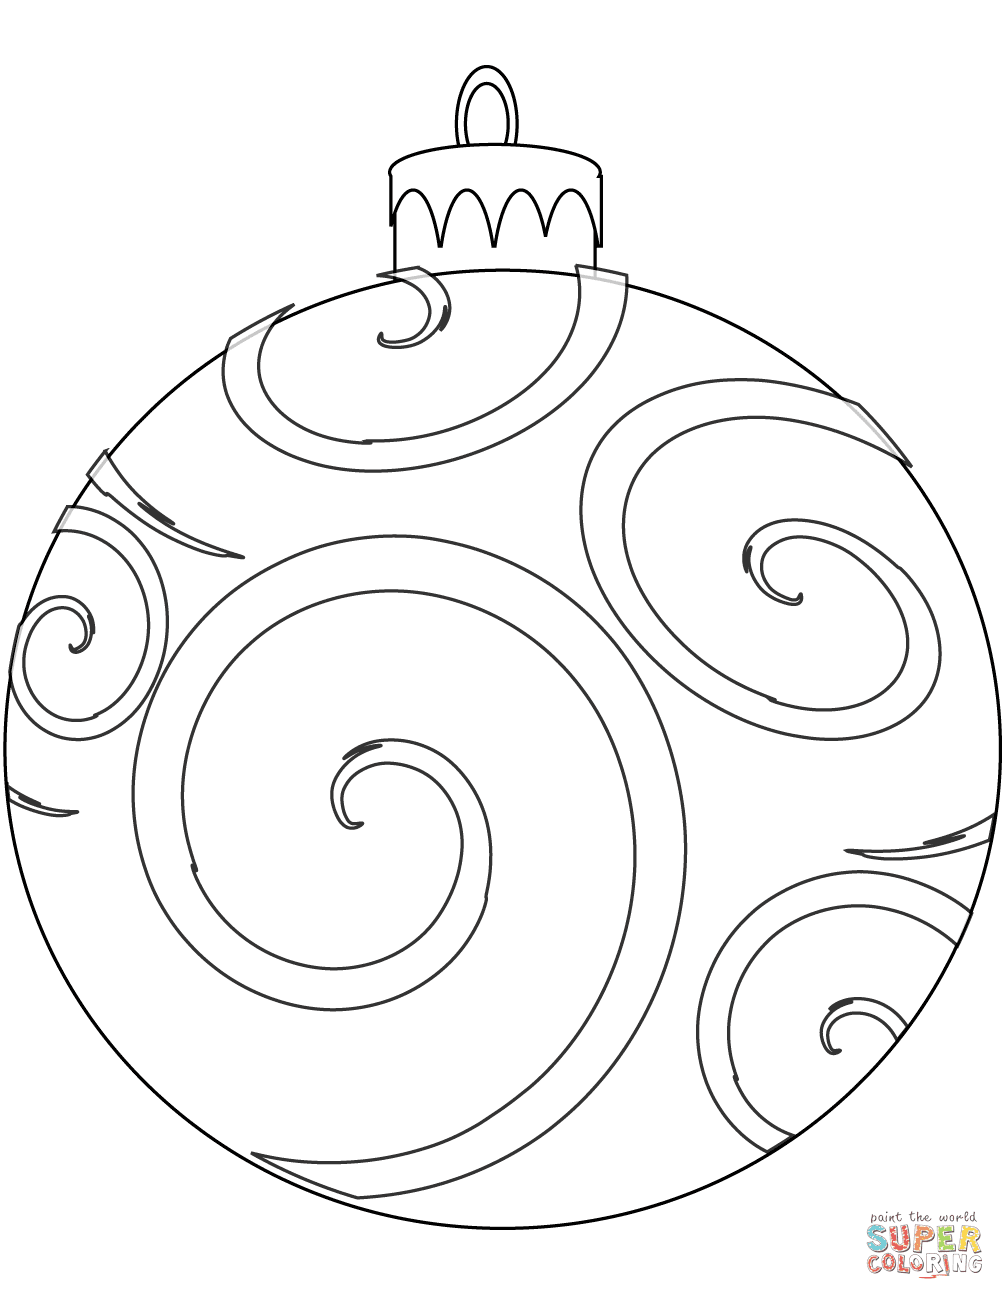 Holiday Ornament coloring page | Free Printable Coloring Pages